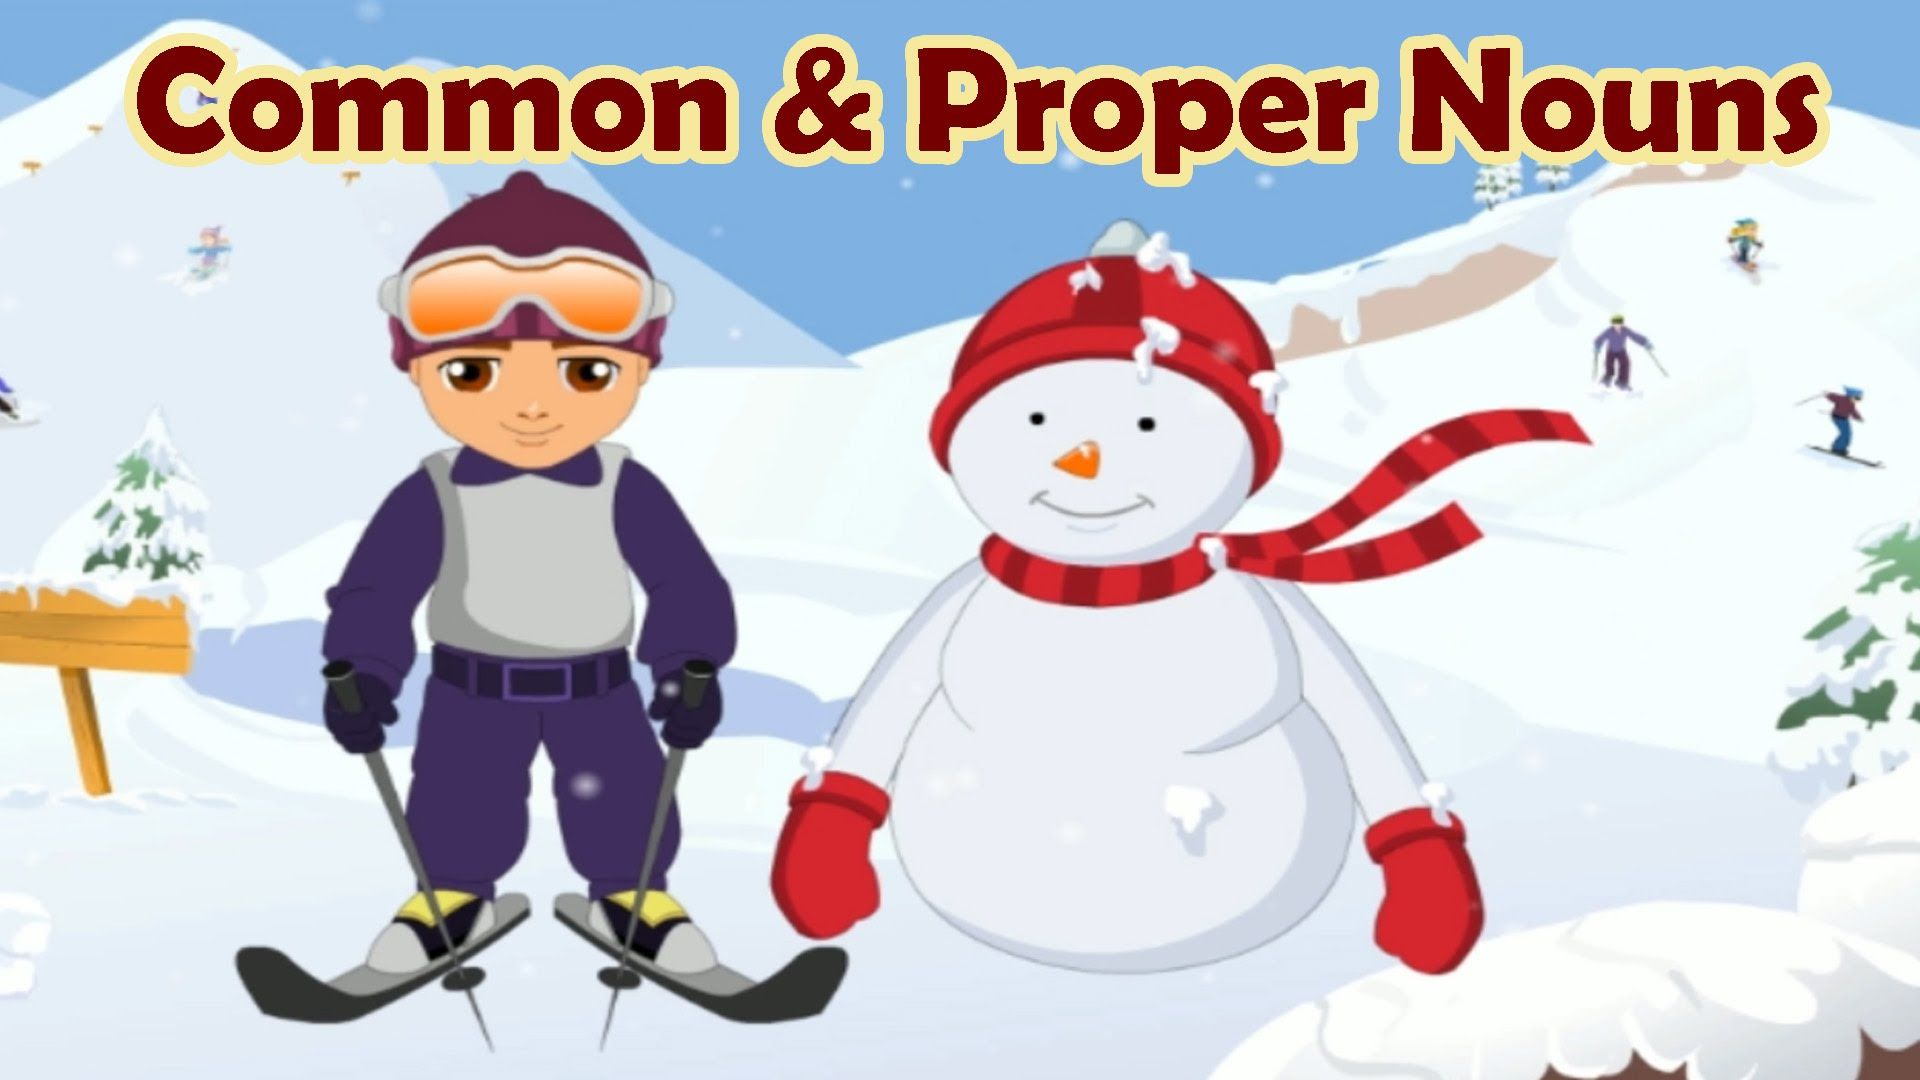 Come Ski Down Noun Mountain With Mr Mogul He Will Help You Identify Proper And Common Nouns